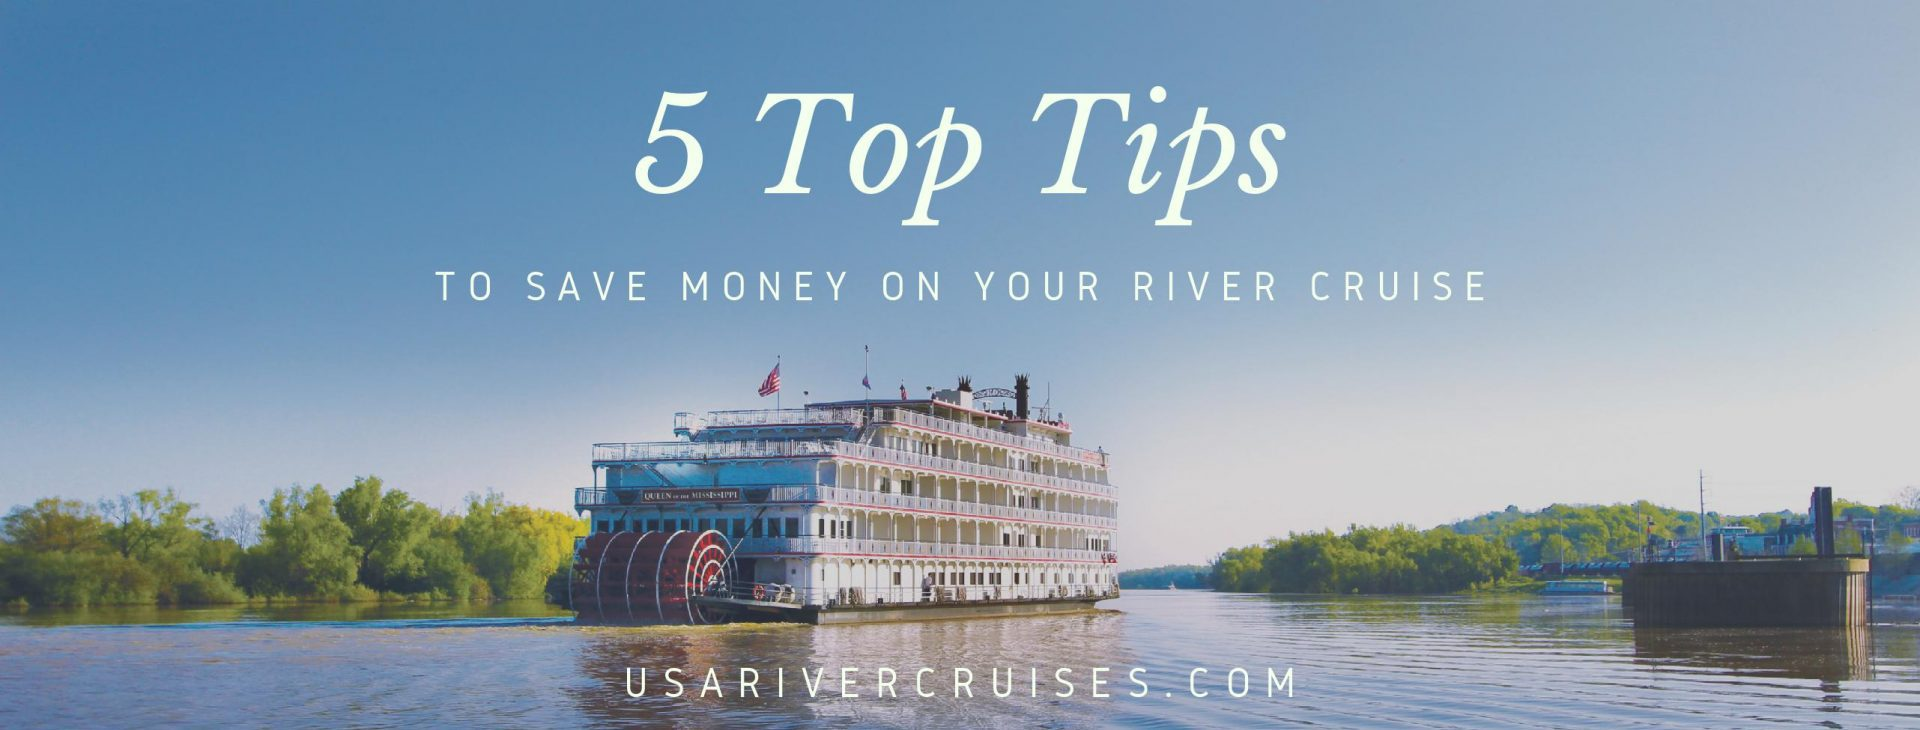 5 Top Tips For Saving Money On Your River Cruise Usa River Cruises